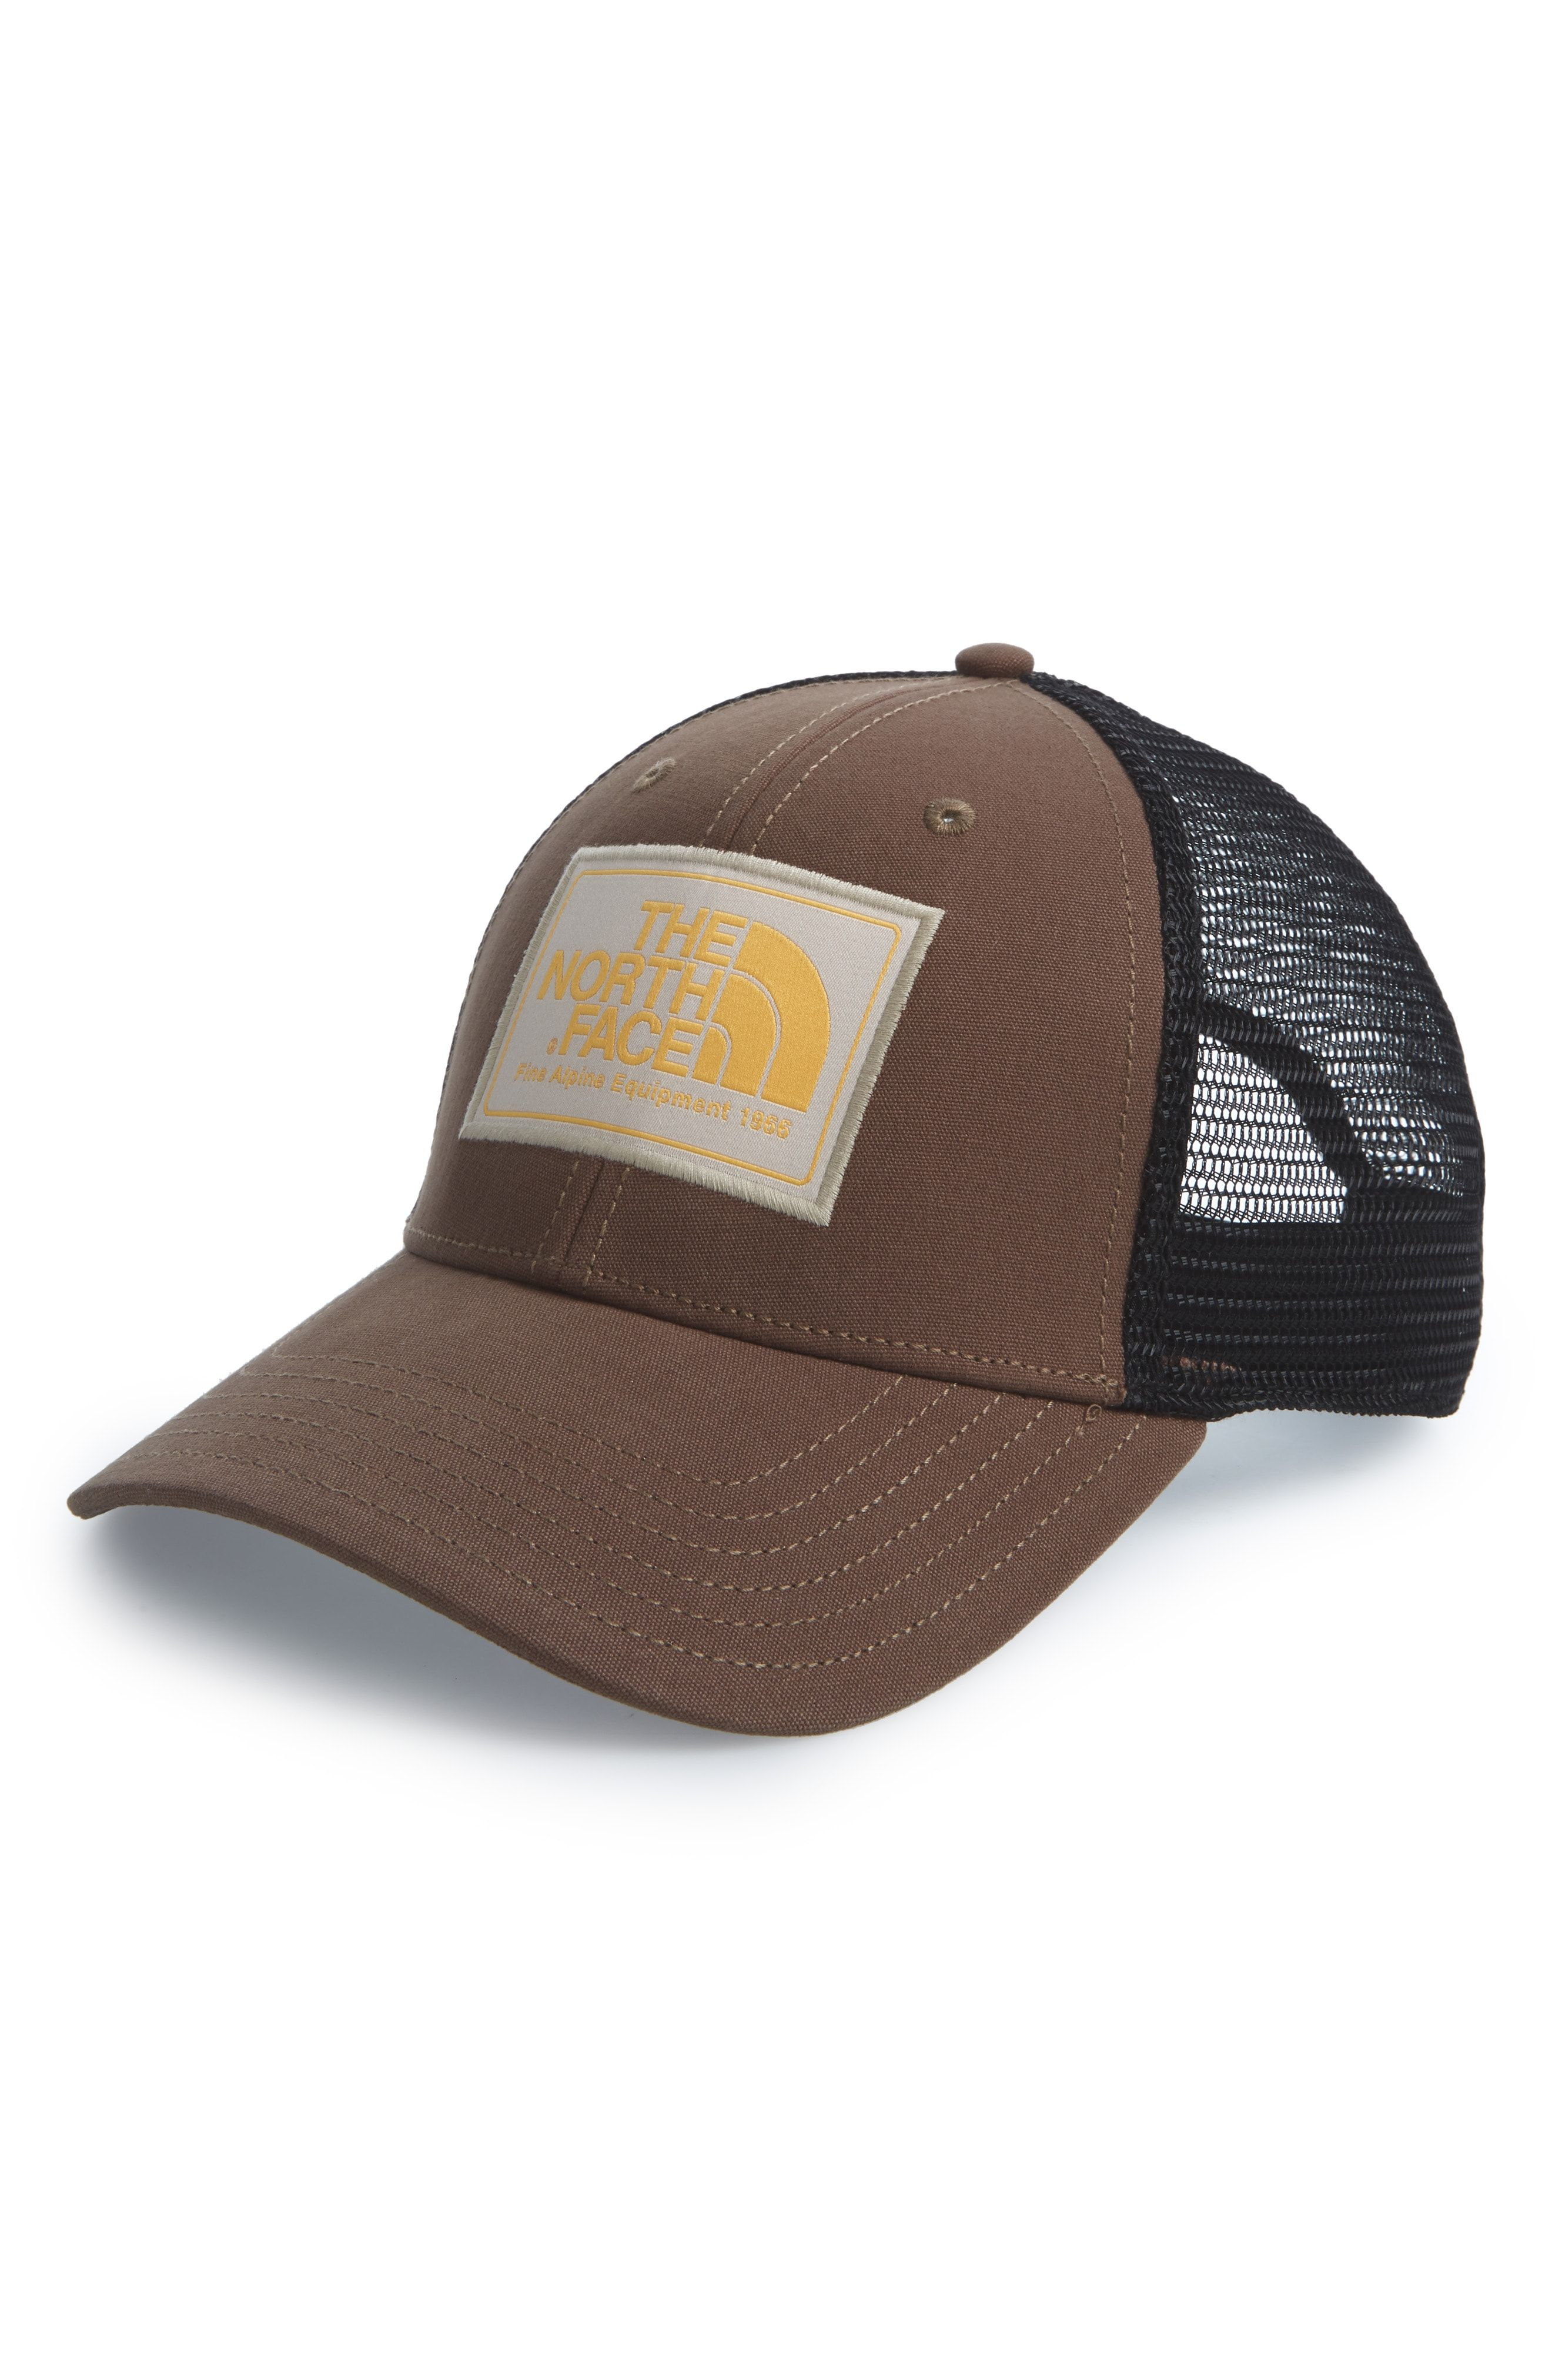 8adb27956 THE NORTH FACE MUDDER TRUCKER HAT - GREEN. #thenorthface | The North ...